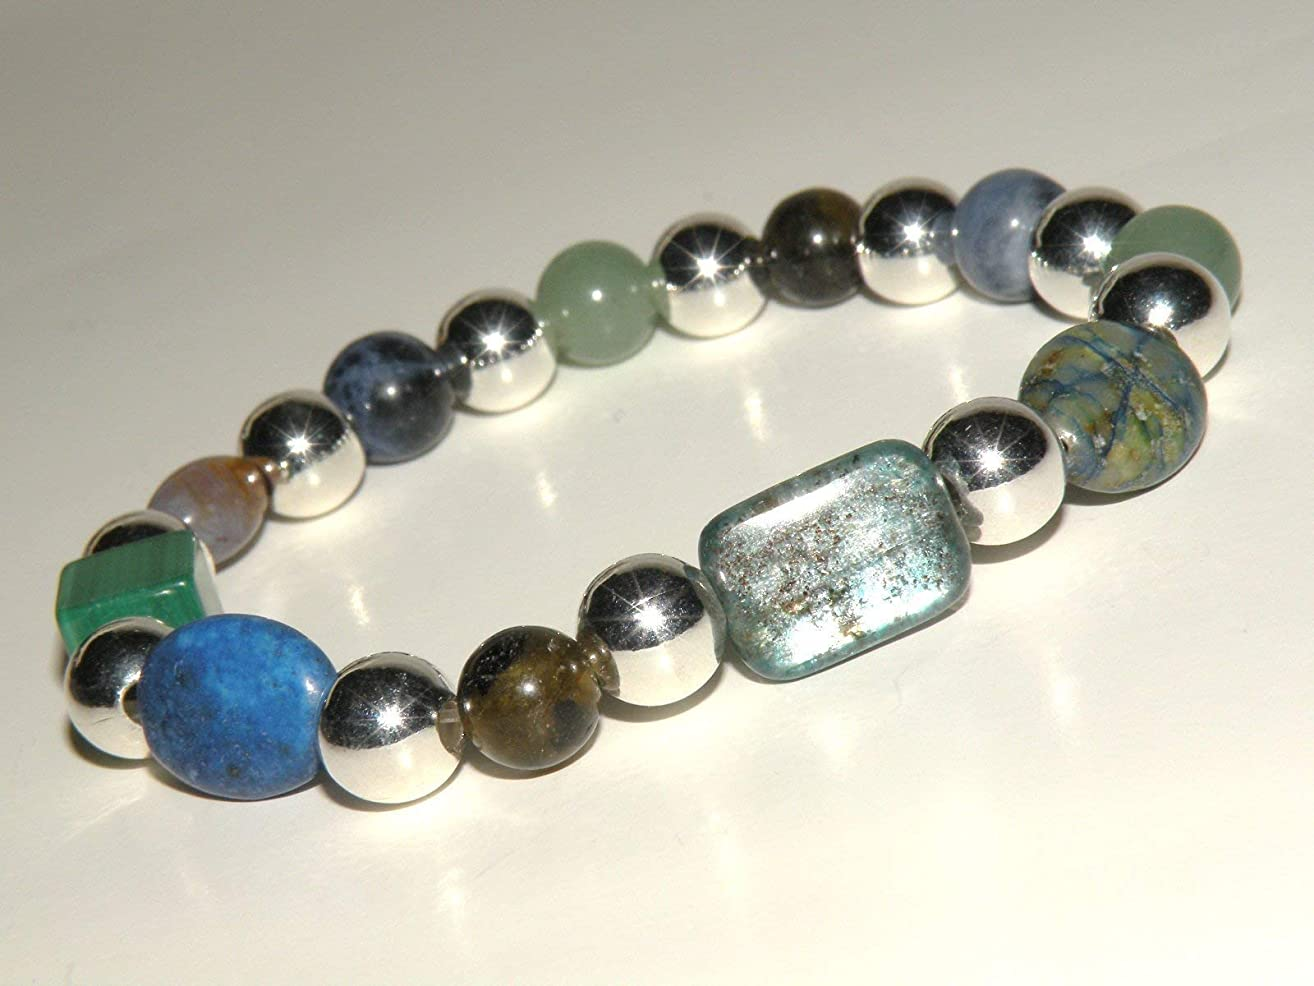 Blood Pressure Control Natural Gemstone Healing Bracelet with Silver Beads stretch